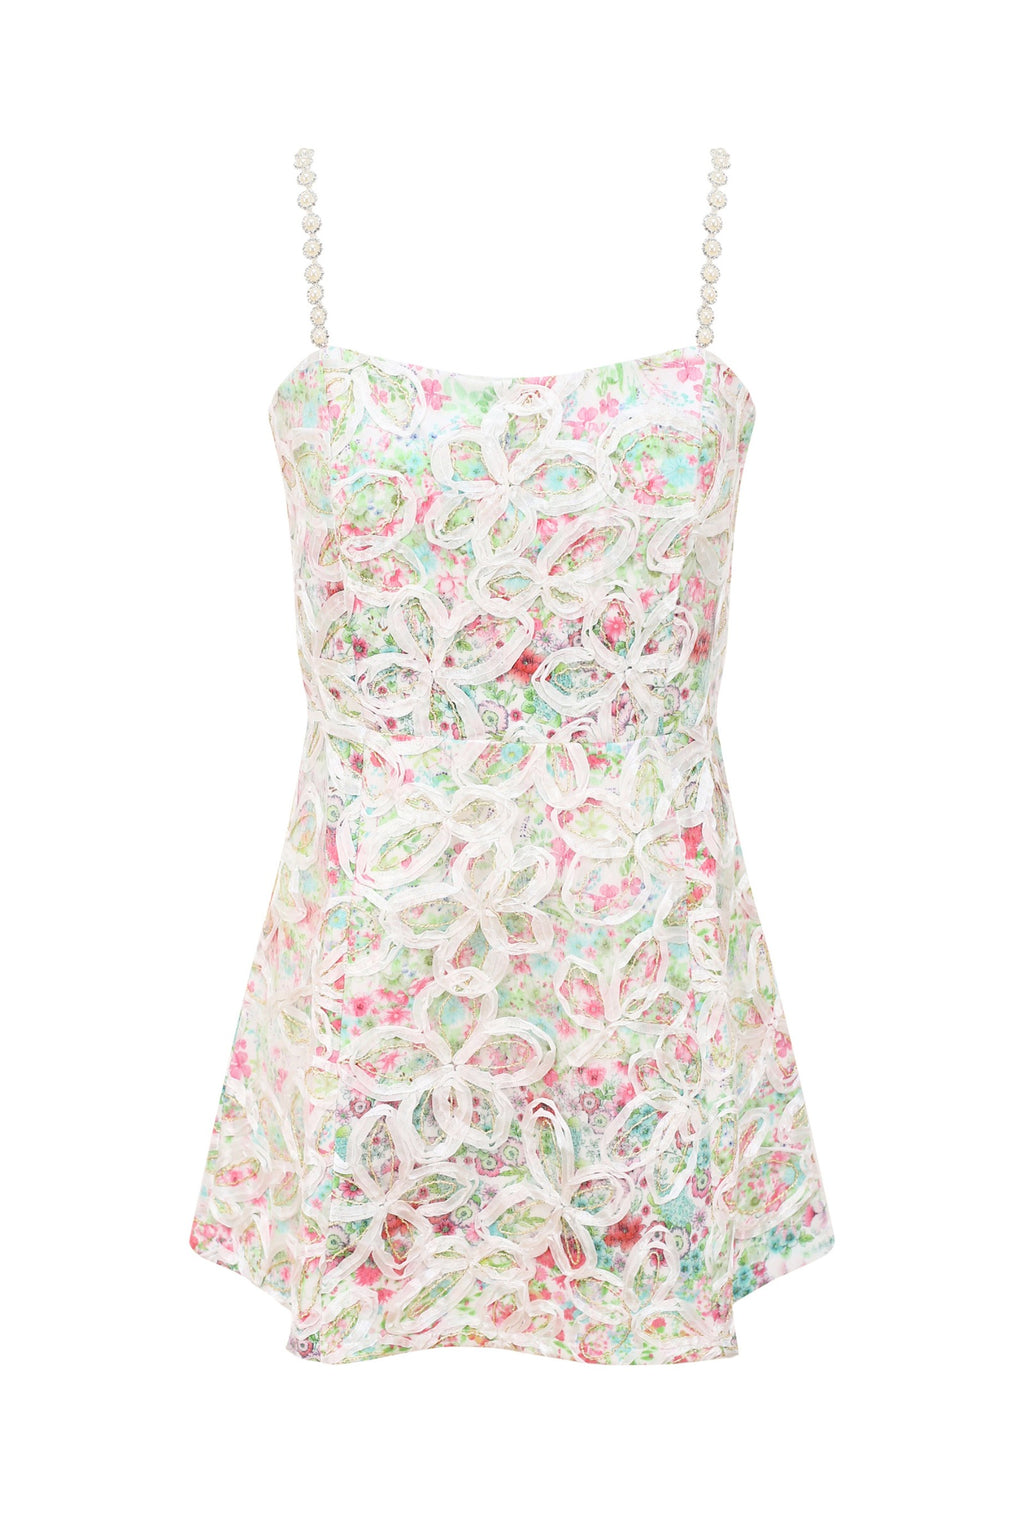 Floral Embroidered Summer Dress